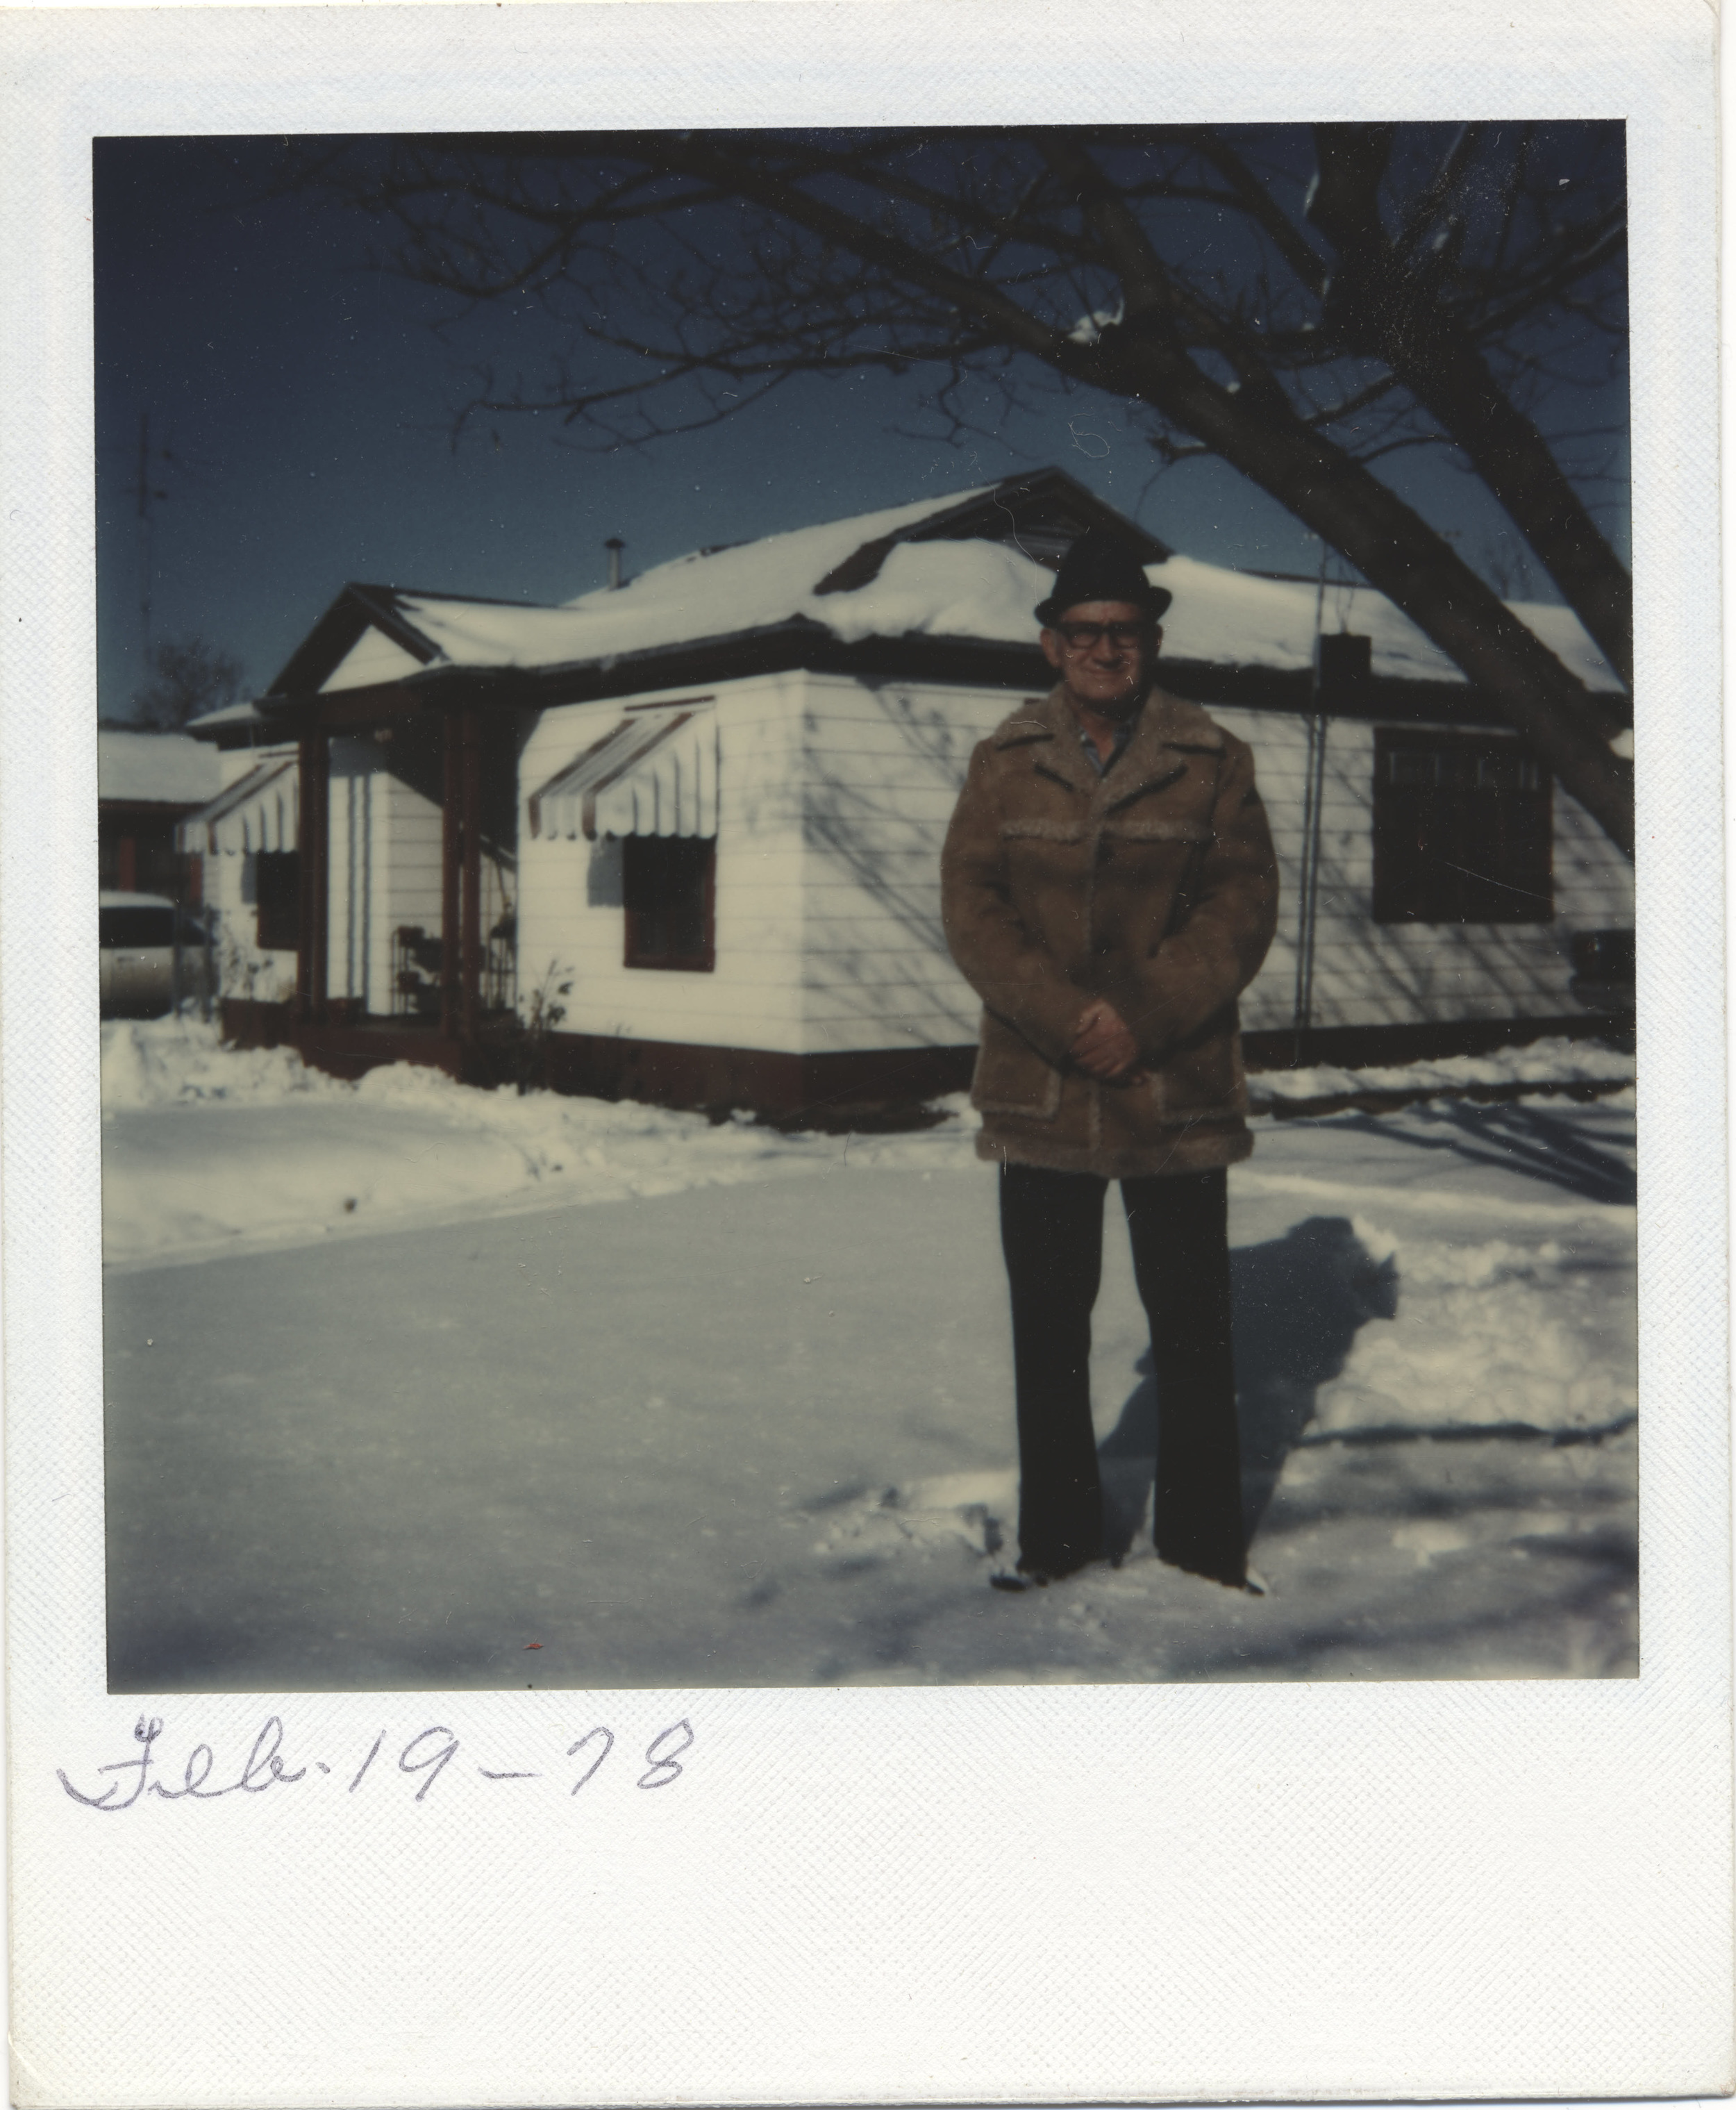 My grandfather in 1978, yes that is snow in Fort Worth Texas. Polaroid FIlm